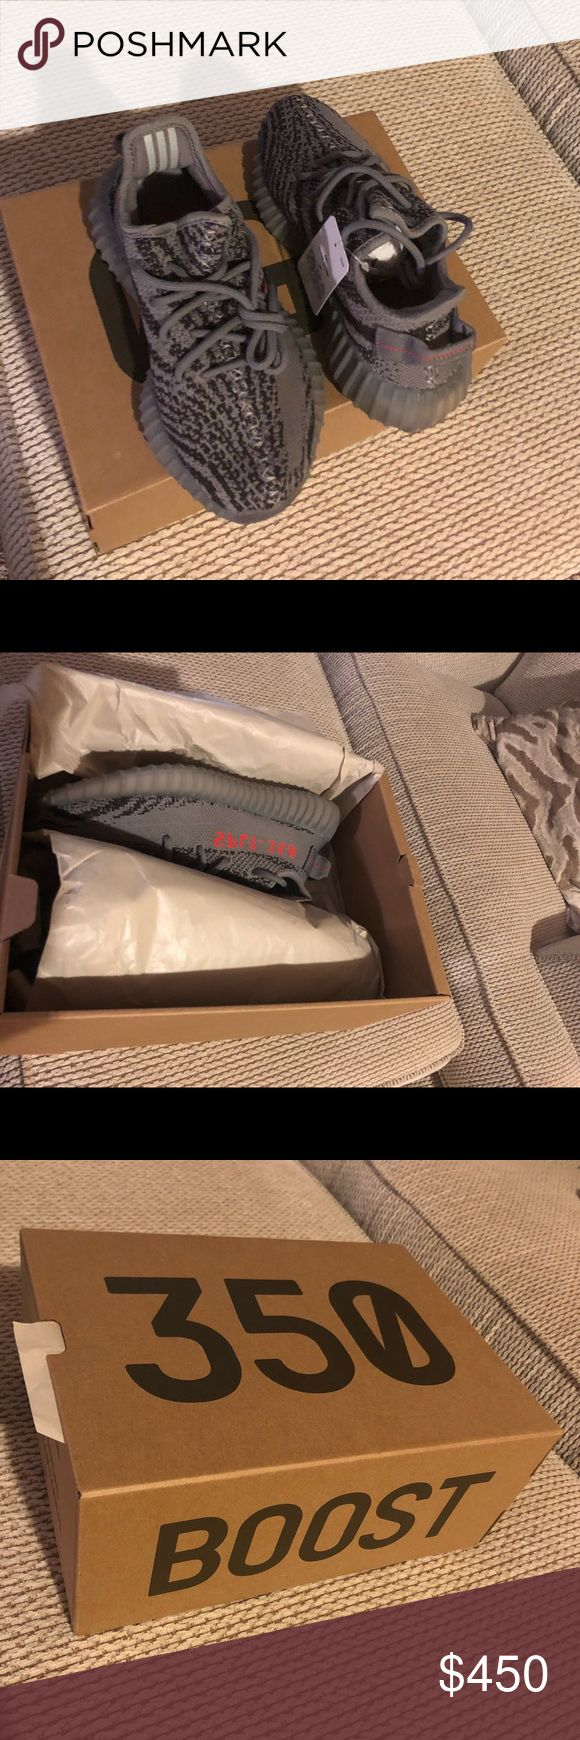 Adidas Yeezy Boost 350 Beluga 2.0 BRAND NEW  Adidas Yeezy Boost 350 Gray Size 5 (boys) Fits If u wear size 7 in women As you can see the price is $415, i am selling for $400 non-negotiable adidas Shoes Athletic Shoes